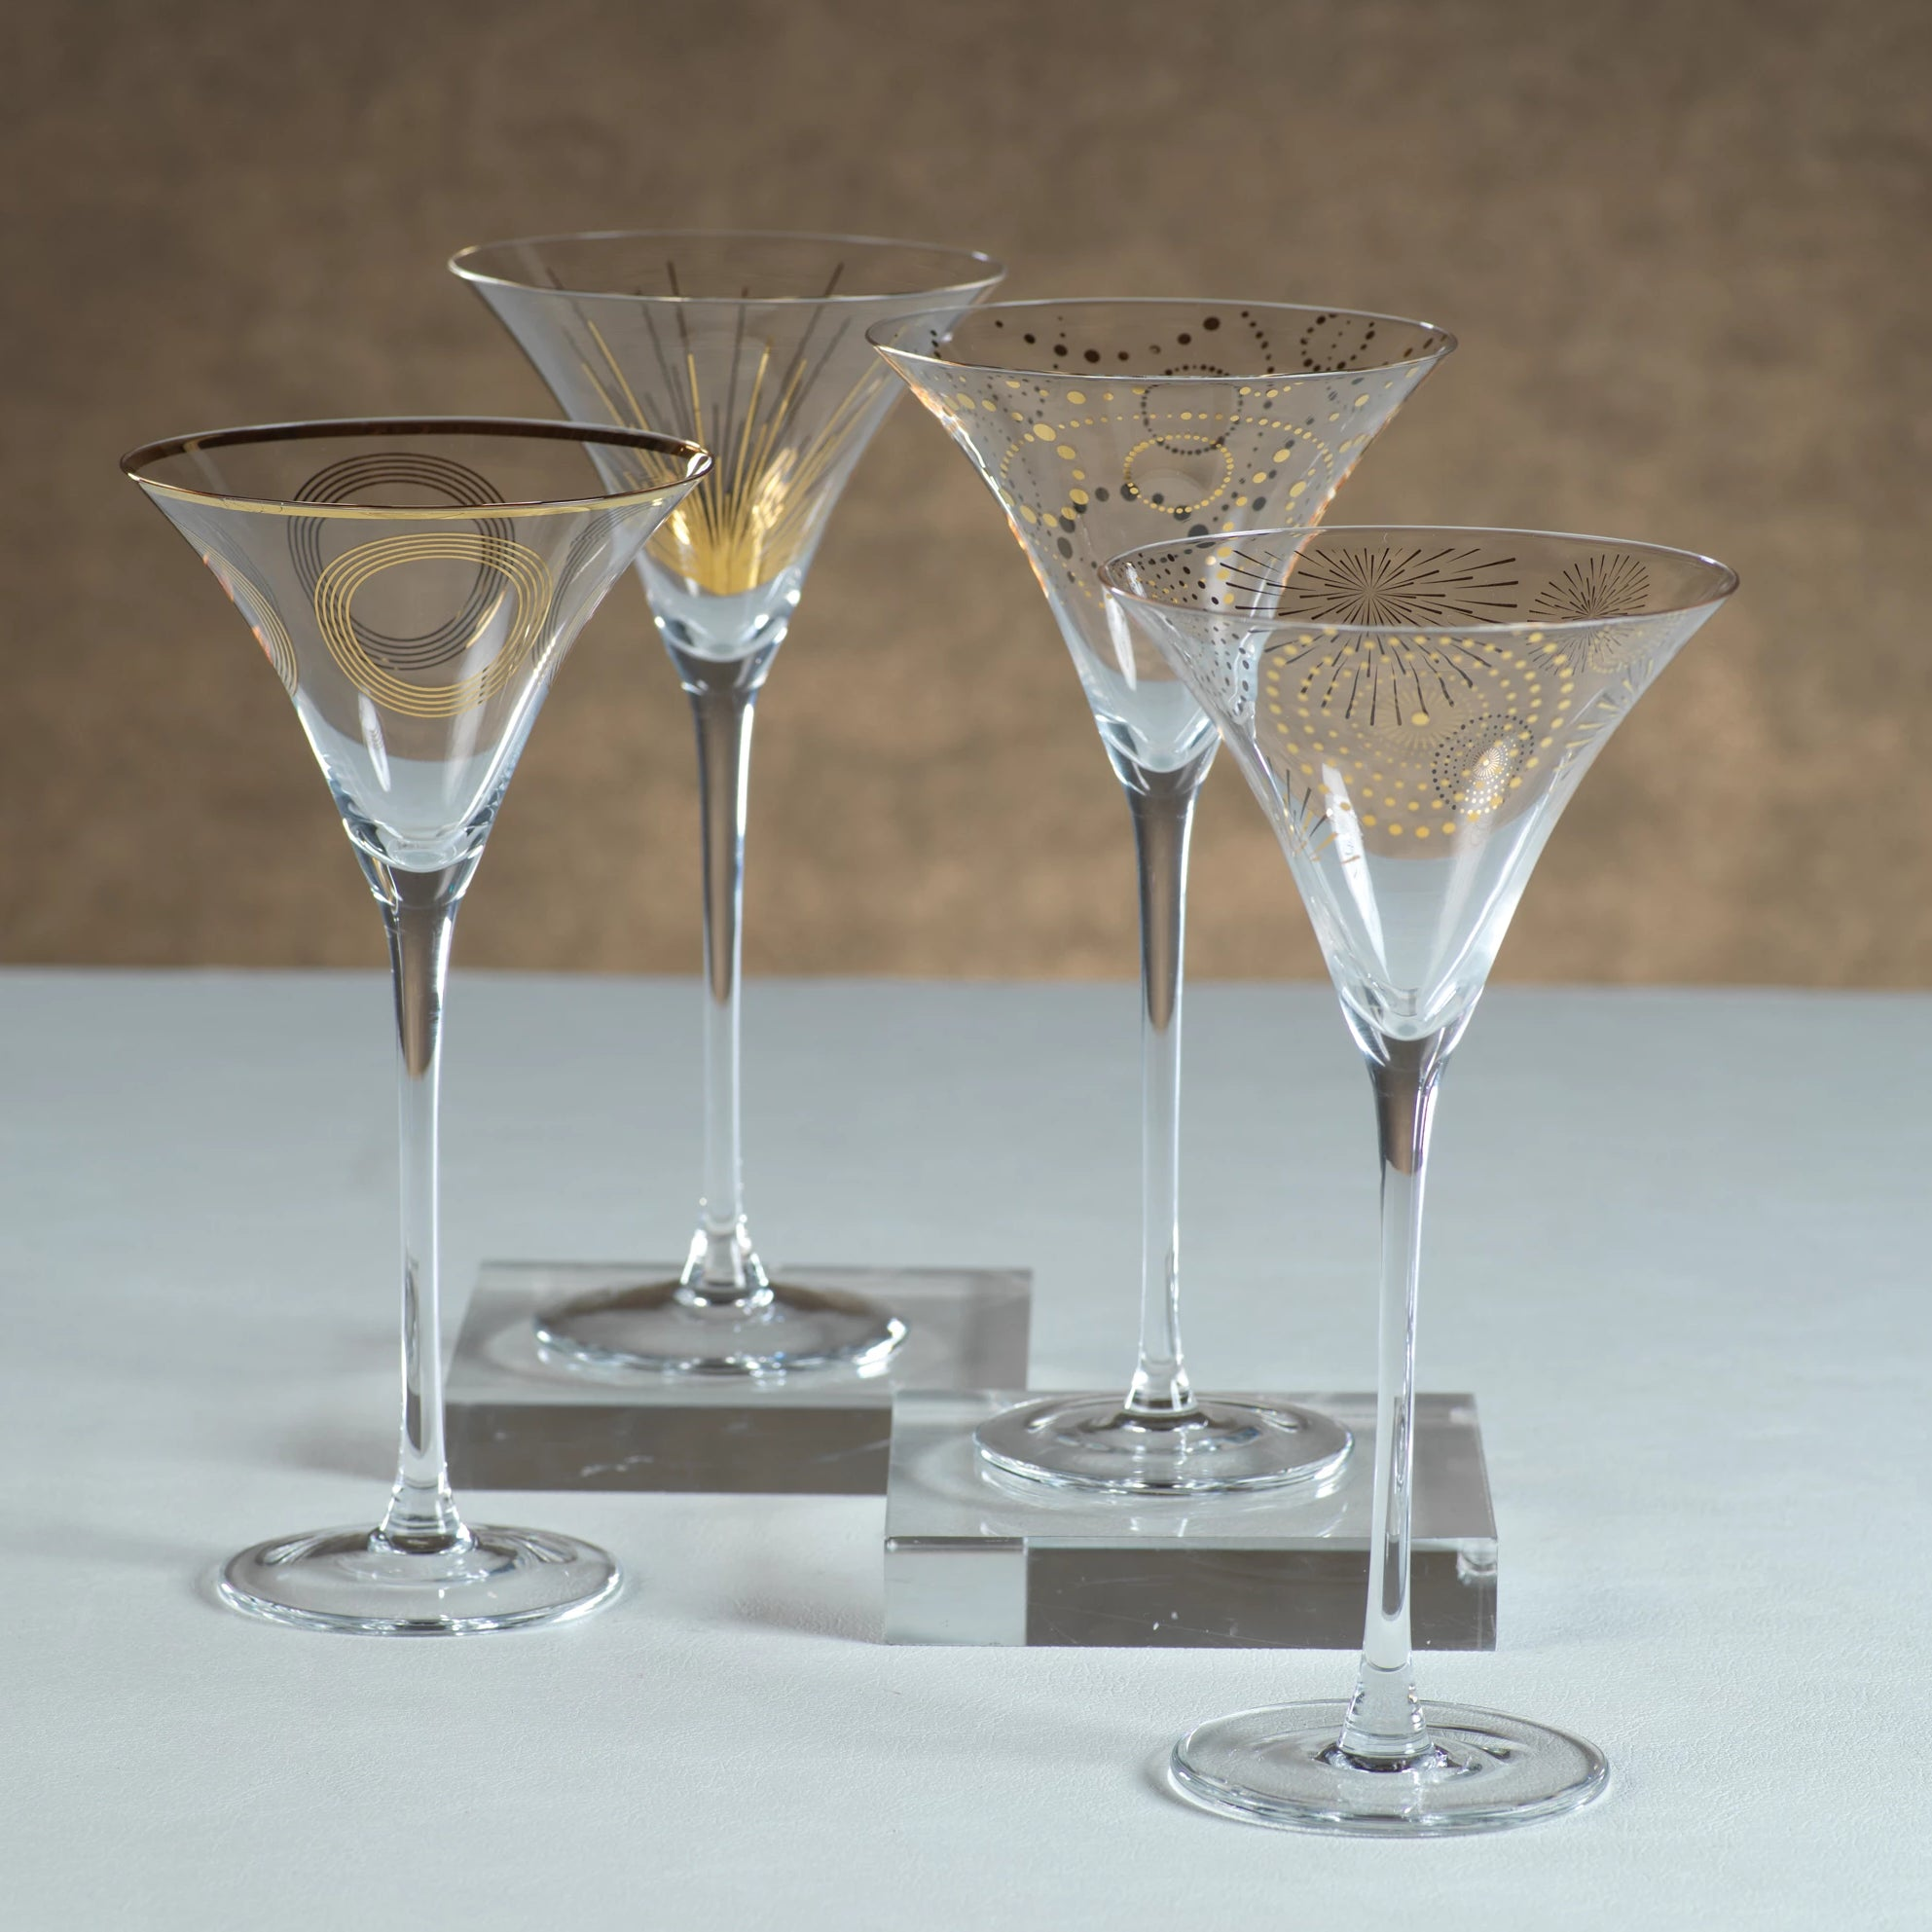 Celebration Martini Glass Assortment - s/4 - CARLYLE AVENUE